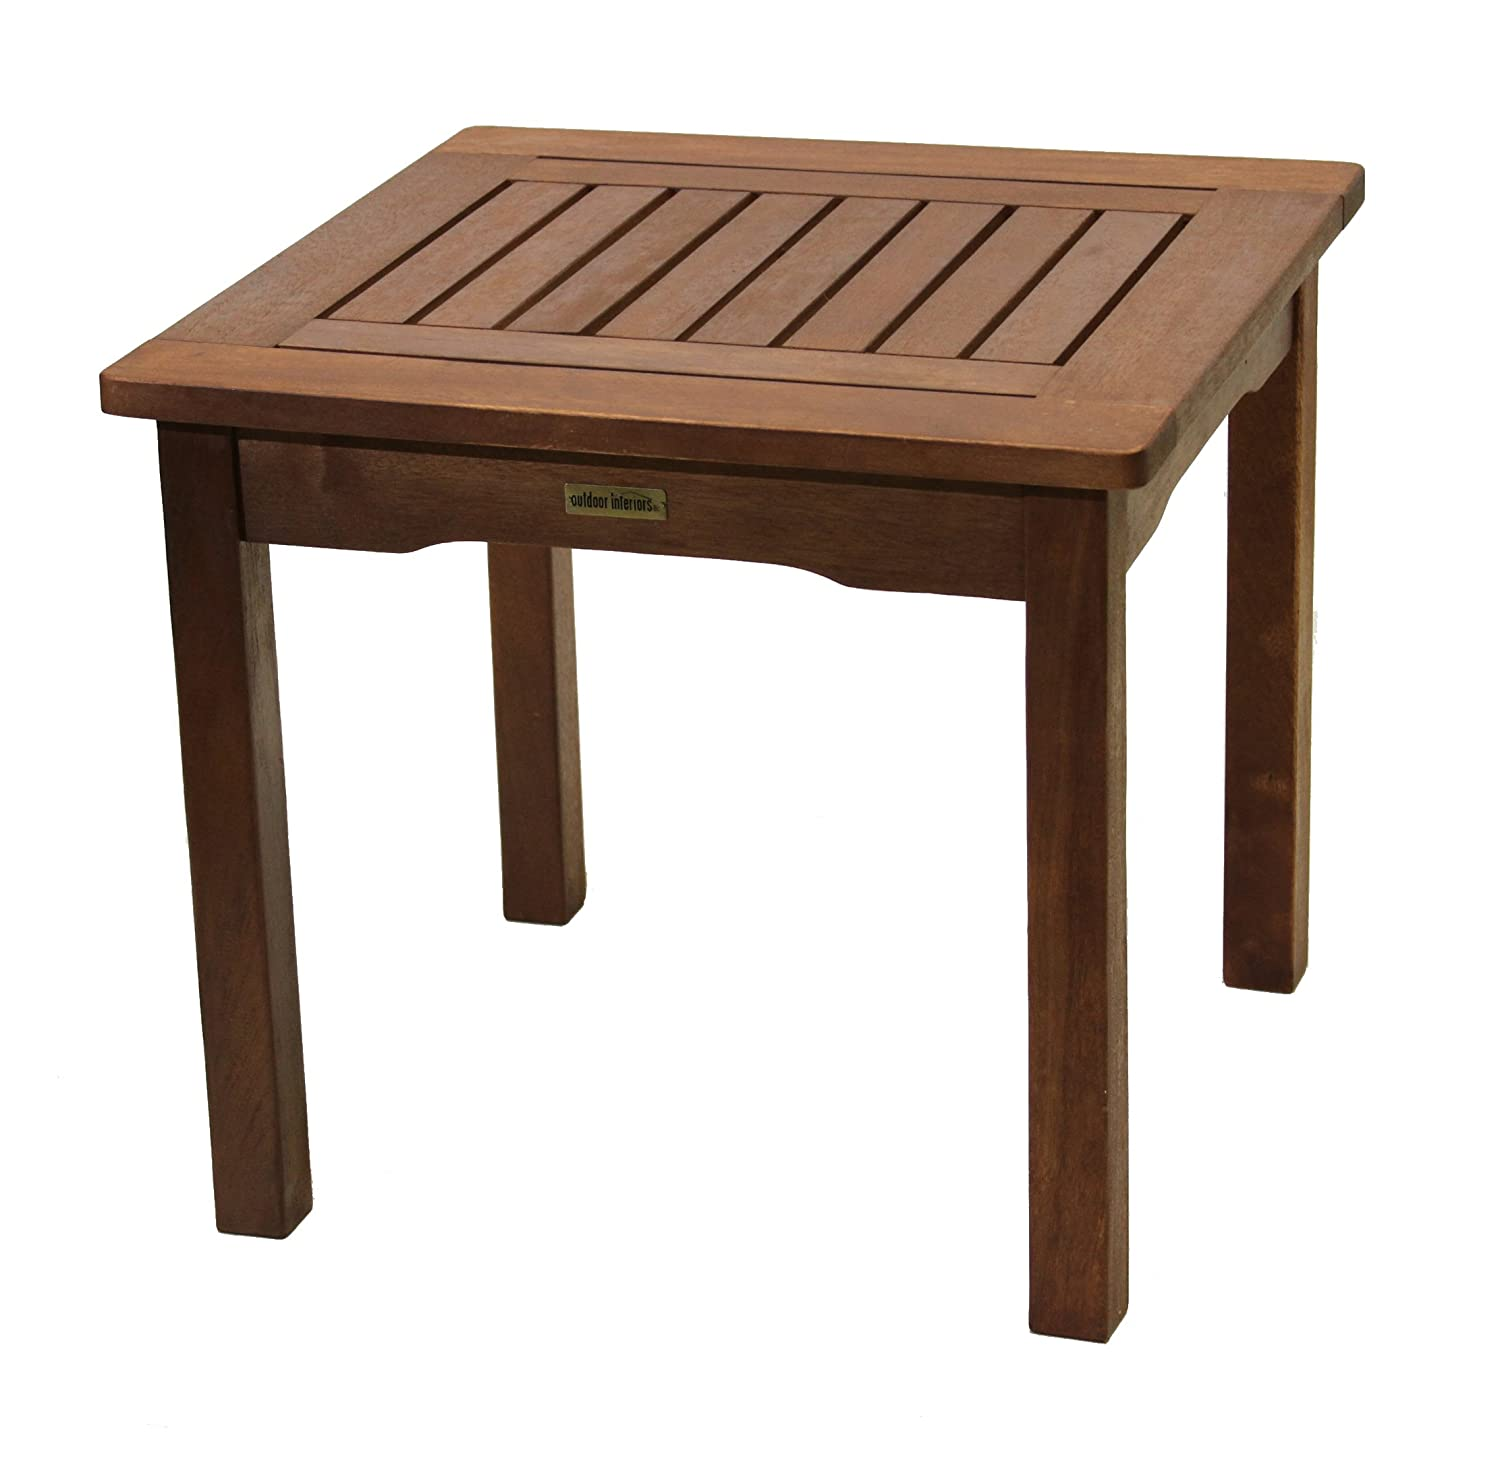 All weather end table eucalyptus easy assembly garden for Small outdoor table and chairs